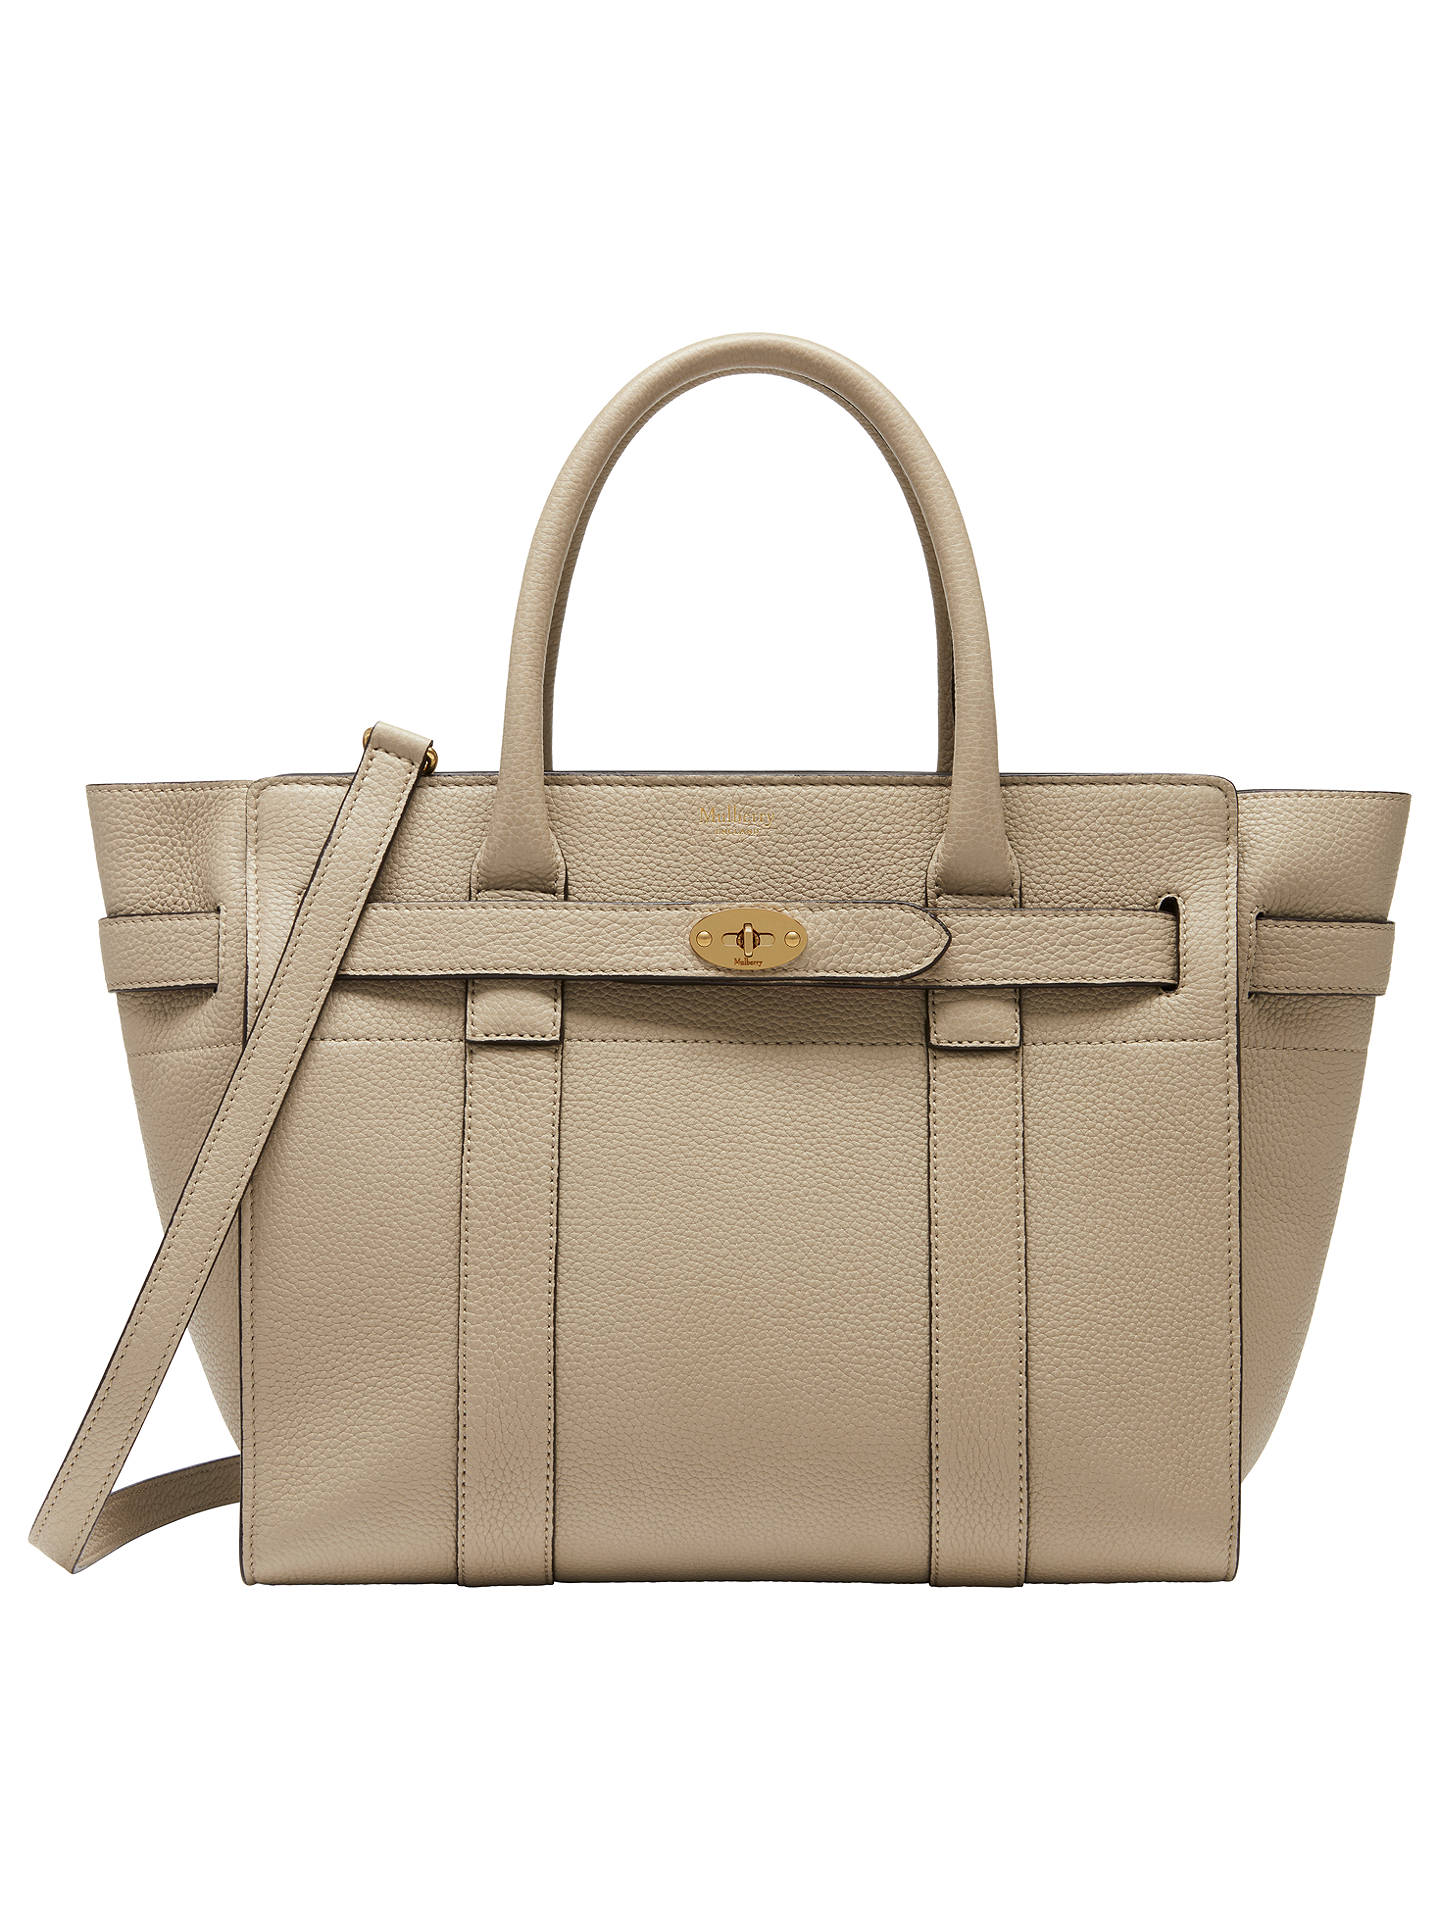 40d53398fa8 BuyMulberry Bayswater Small Classic Grain Leather Zipped Bag, Dune Online  at johnlewis.com ...